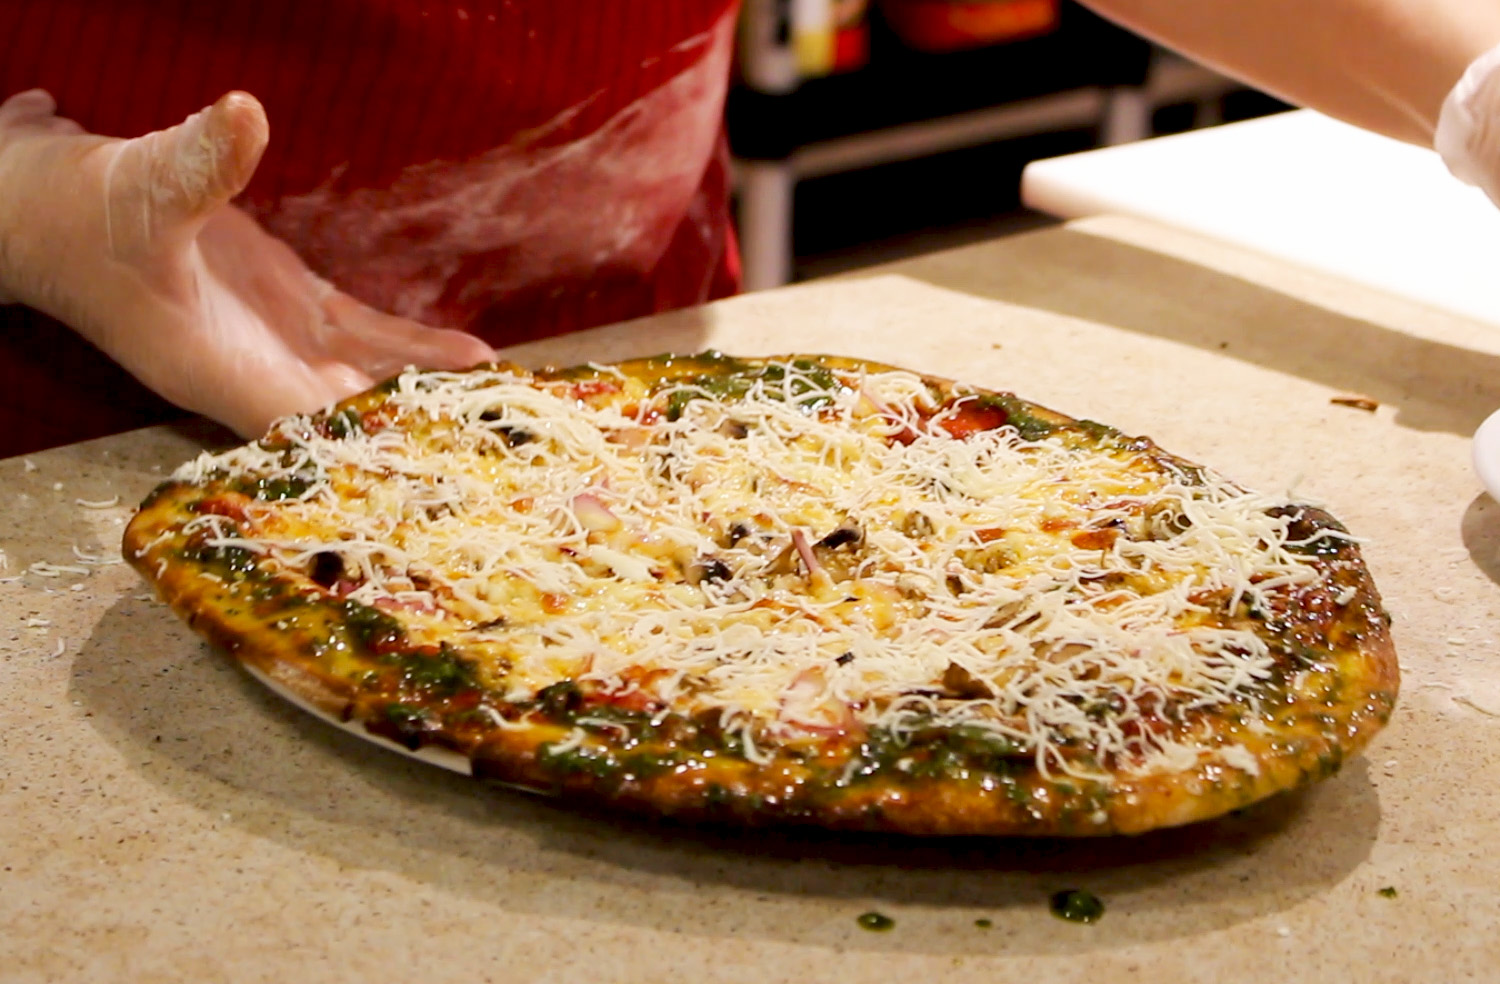 Pizza with fresh parmesan cheese and pesto on the crust.